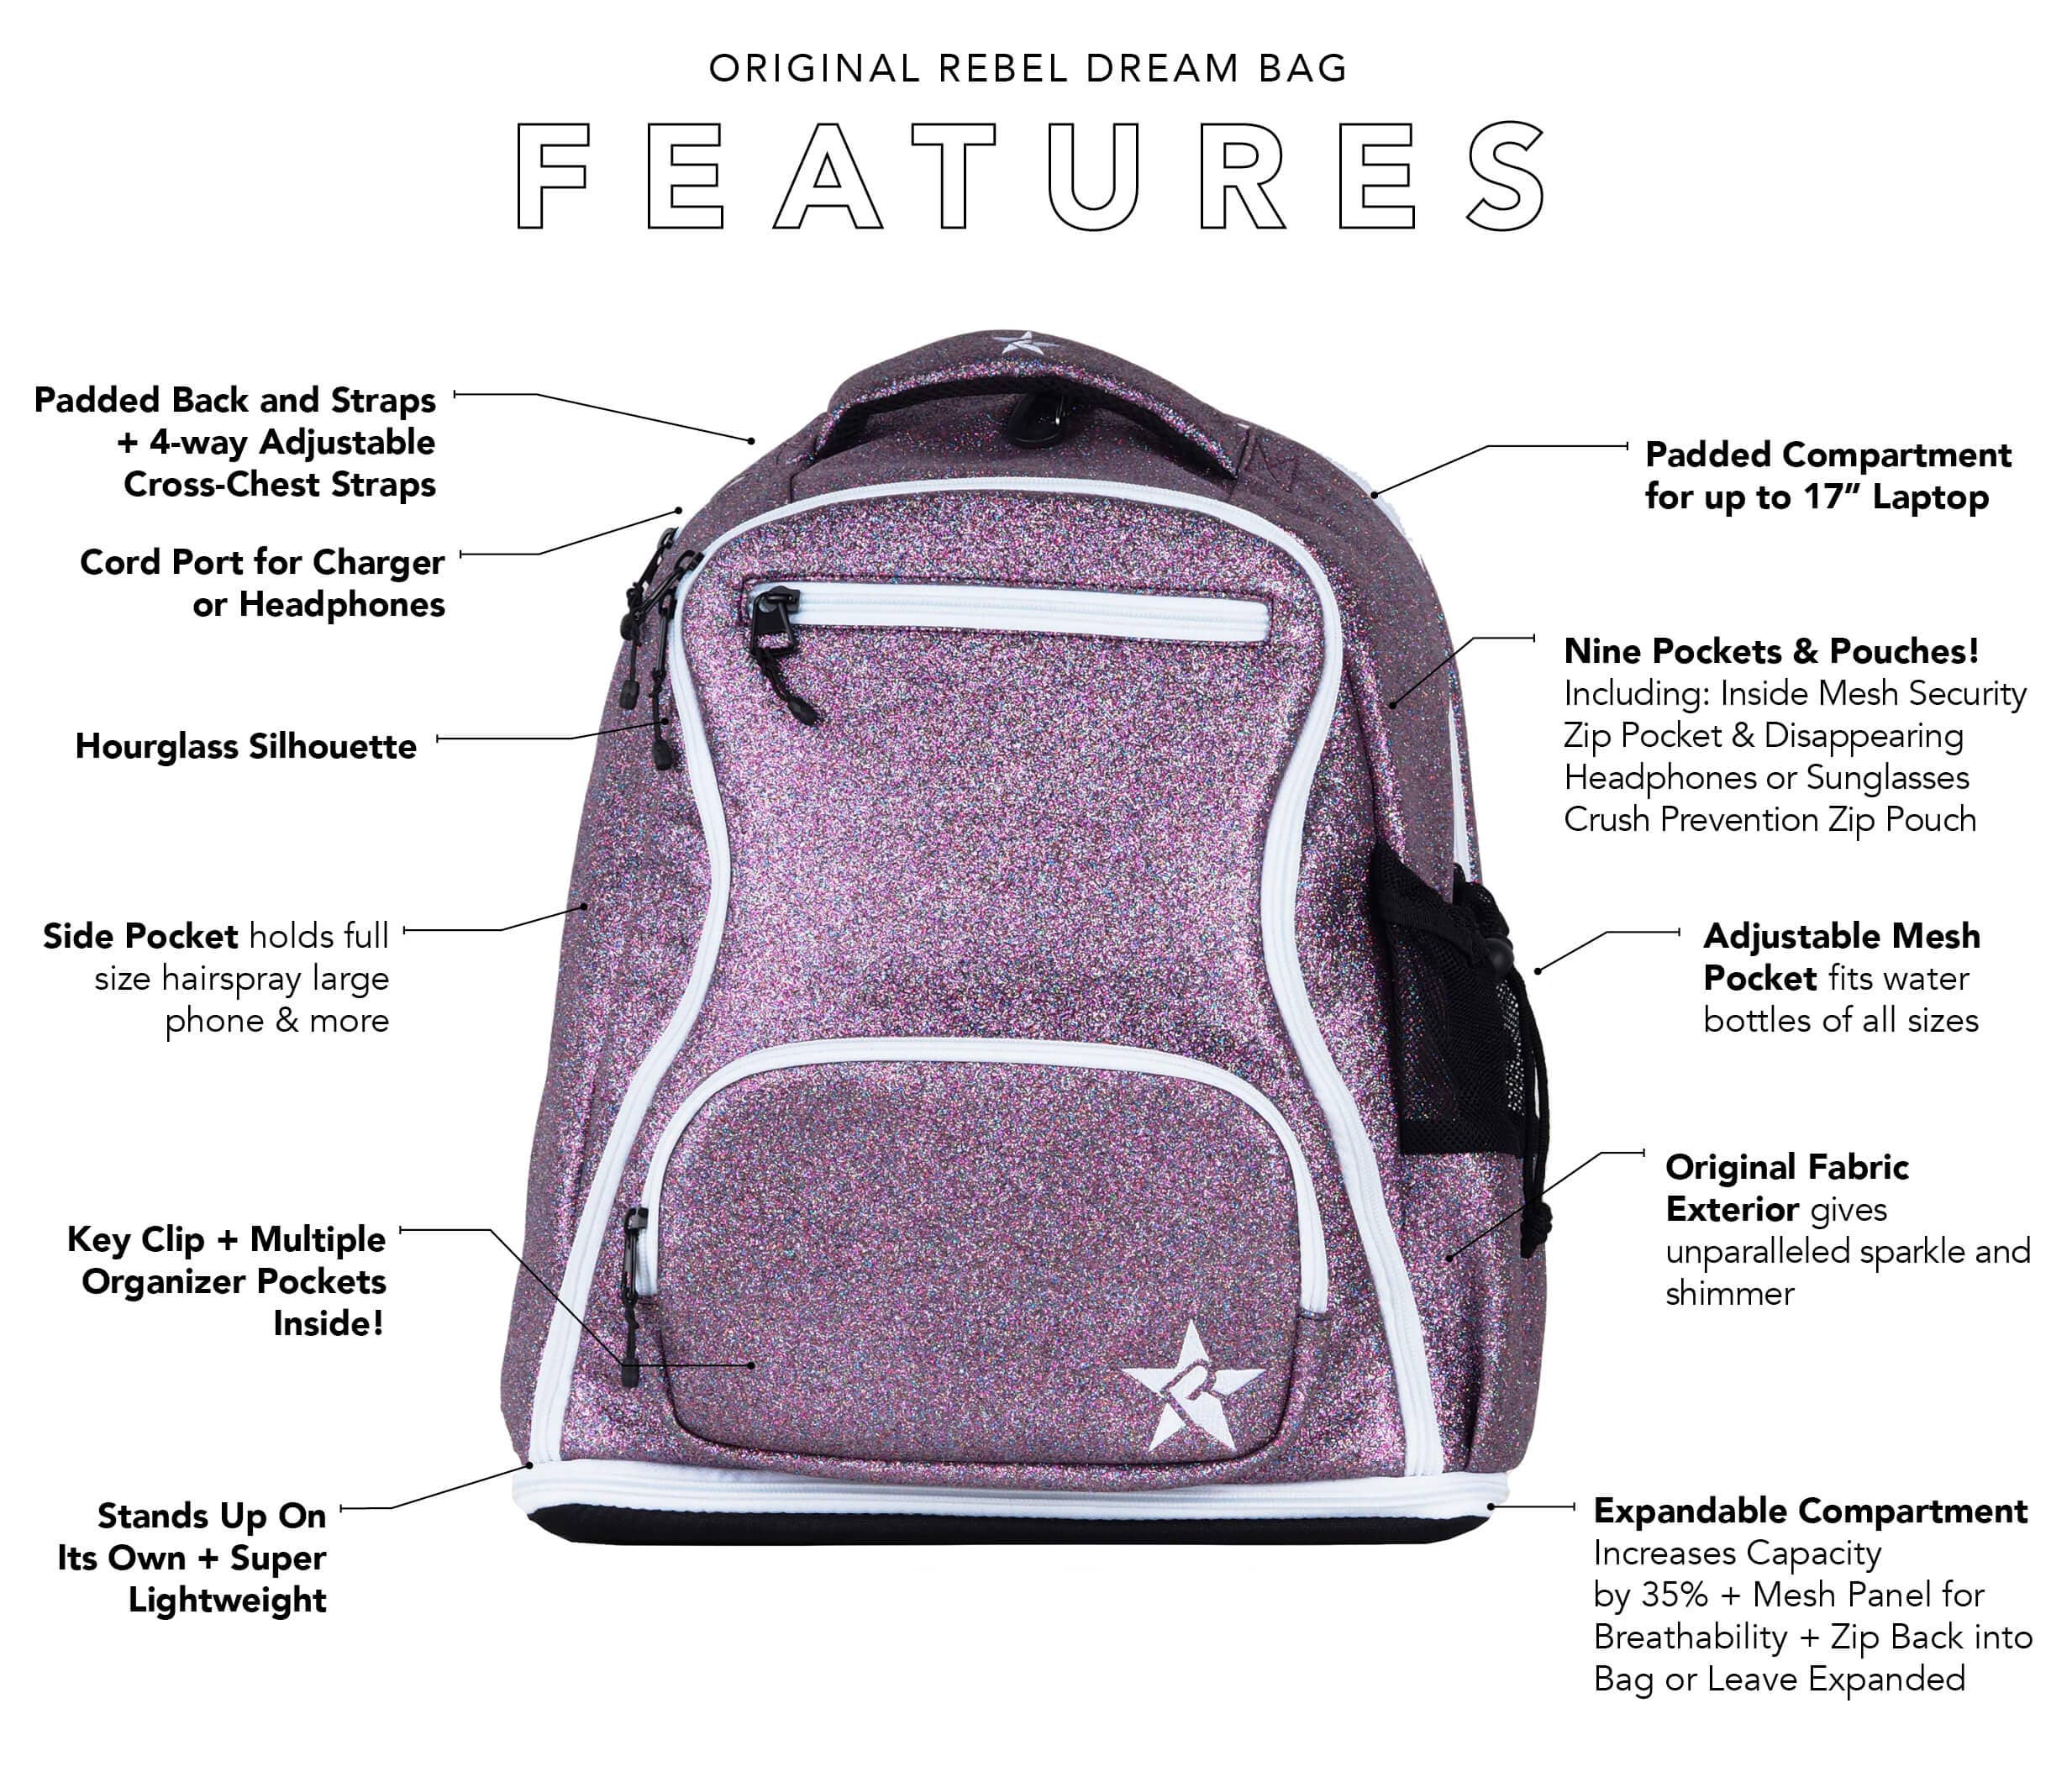 red cheer bag main features